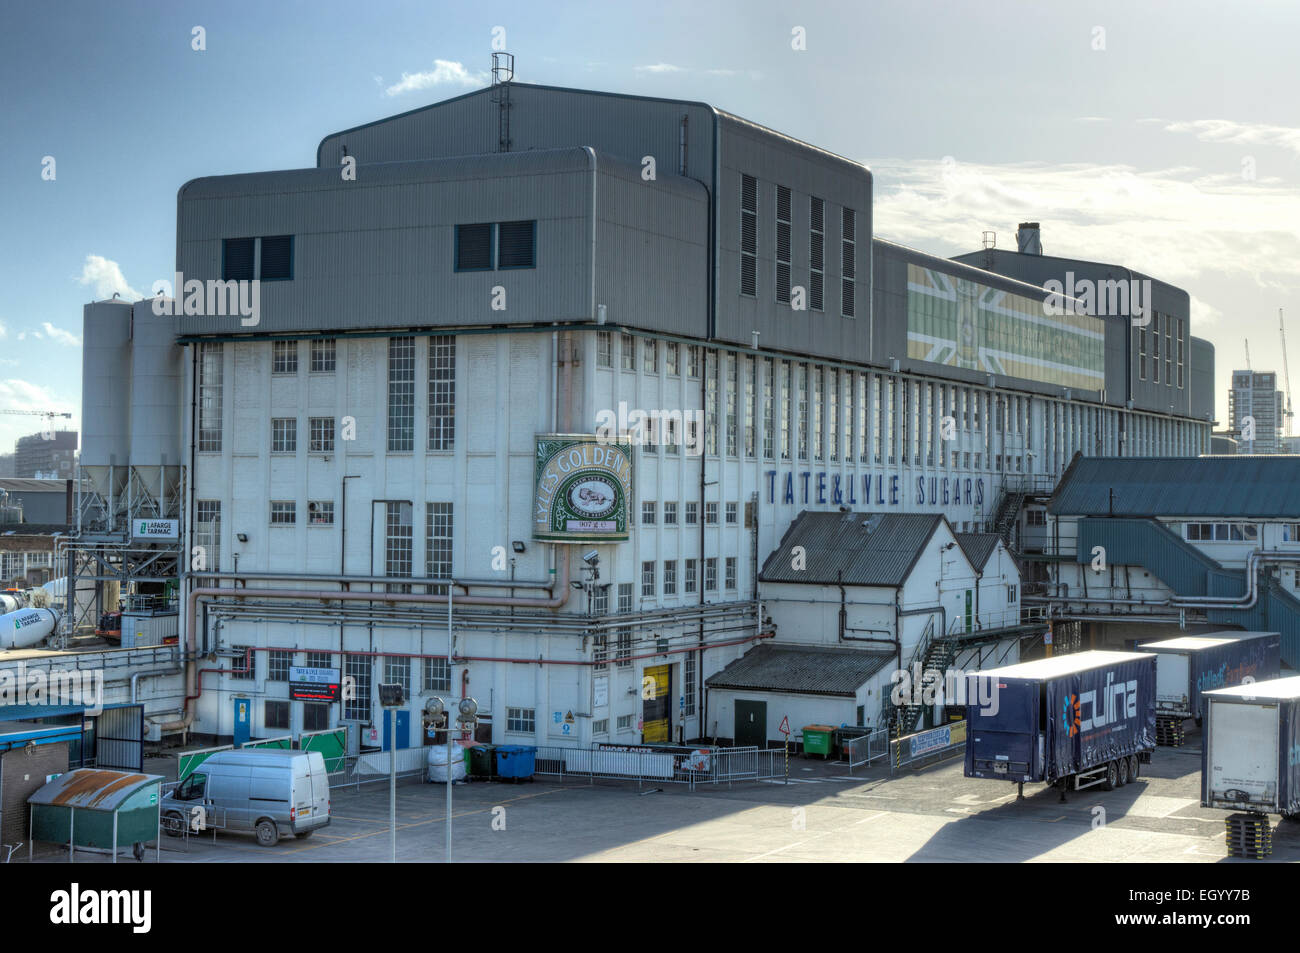 tate and Lyle Factory, Silvertown,  London sugar factory - Stock Image